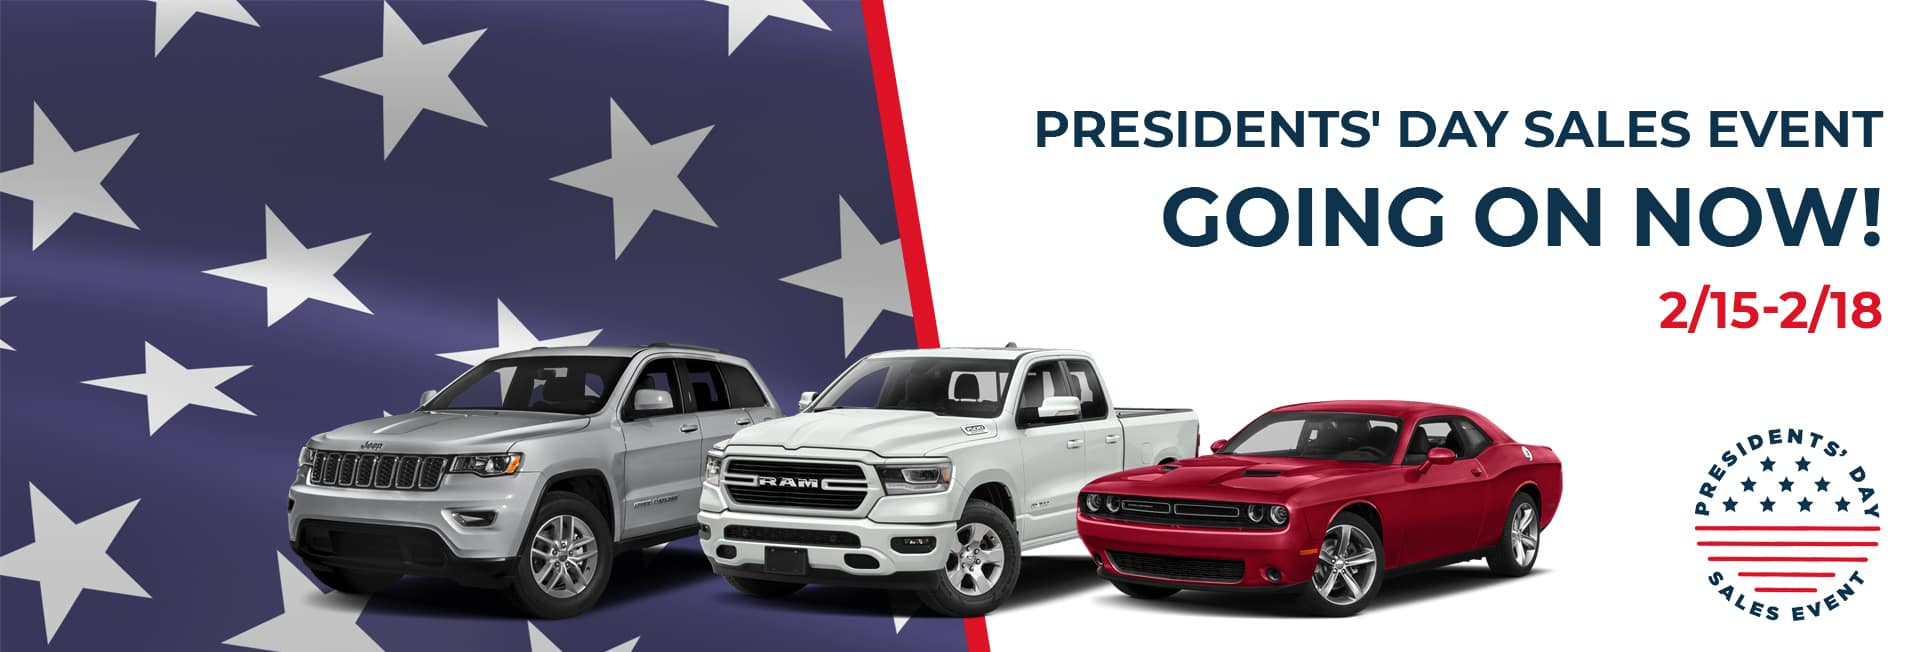 CDJR Norwood Presidents' Day Sales Event